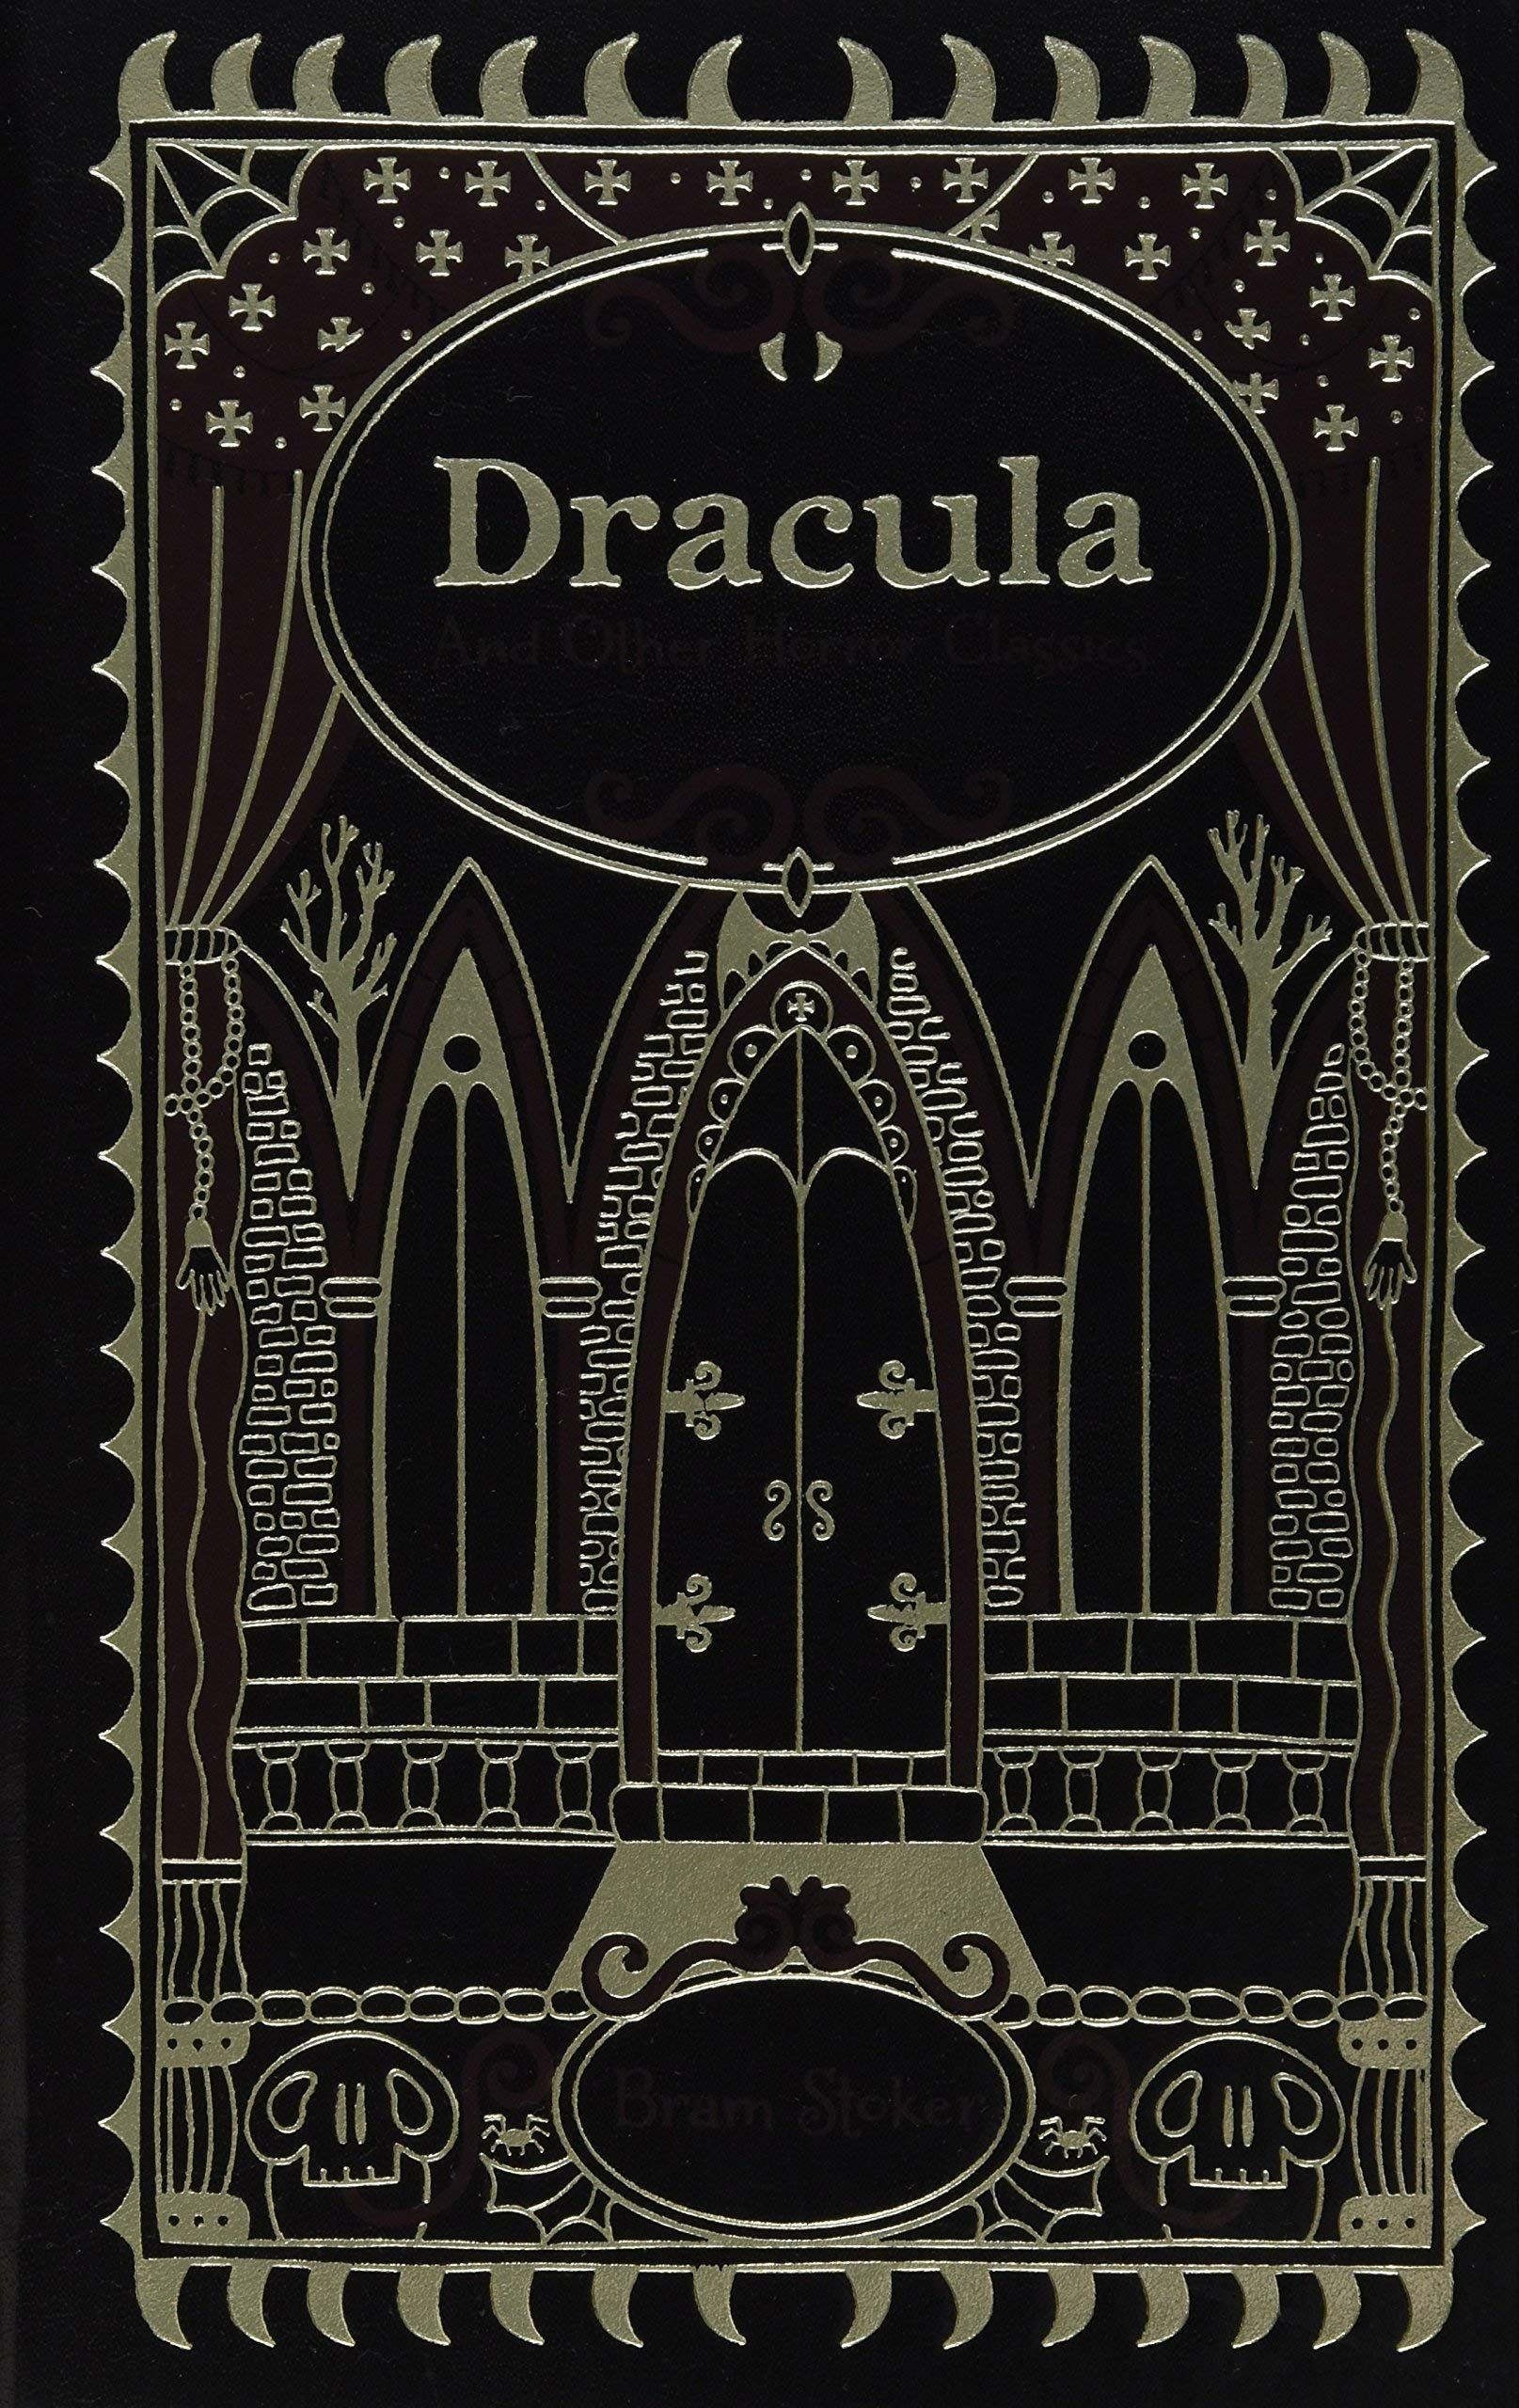 Dracula And Other Horror Classics Leatherbound Classic Collection By Bram Stoker 2013 Dracula Horror Adventures In Wonderland